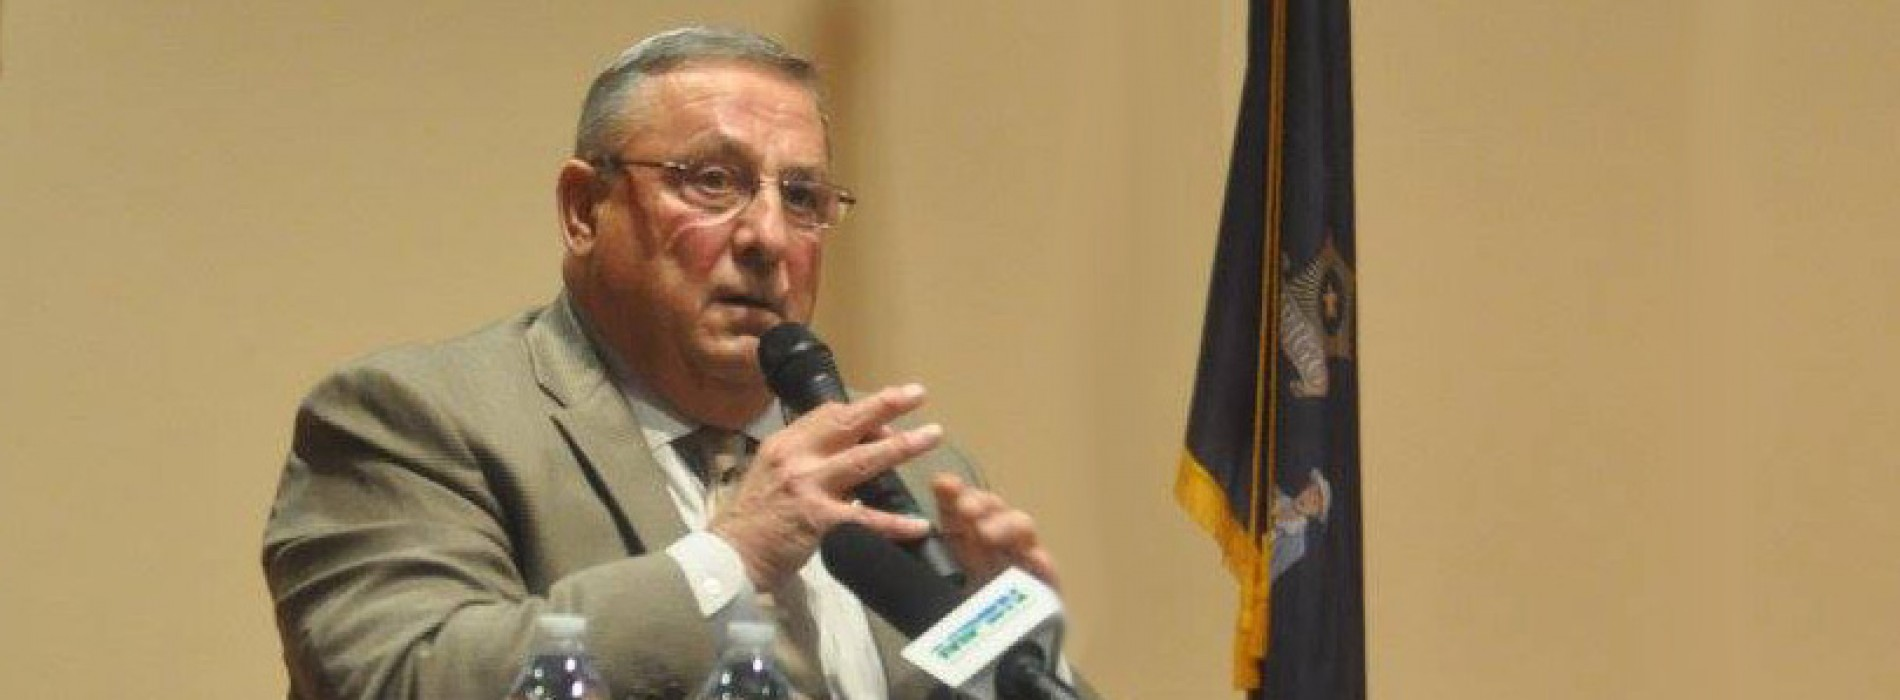 Despite vetoing it five times, Gov. LePage has no idea how health care expansion works